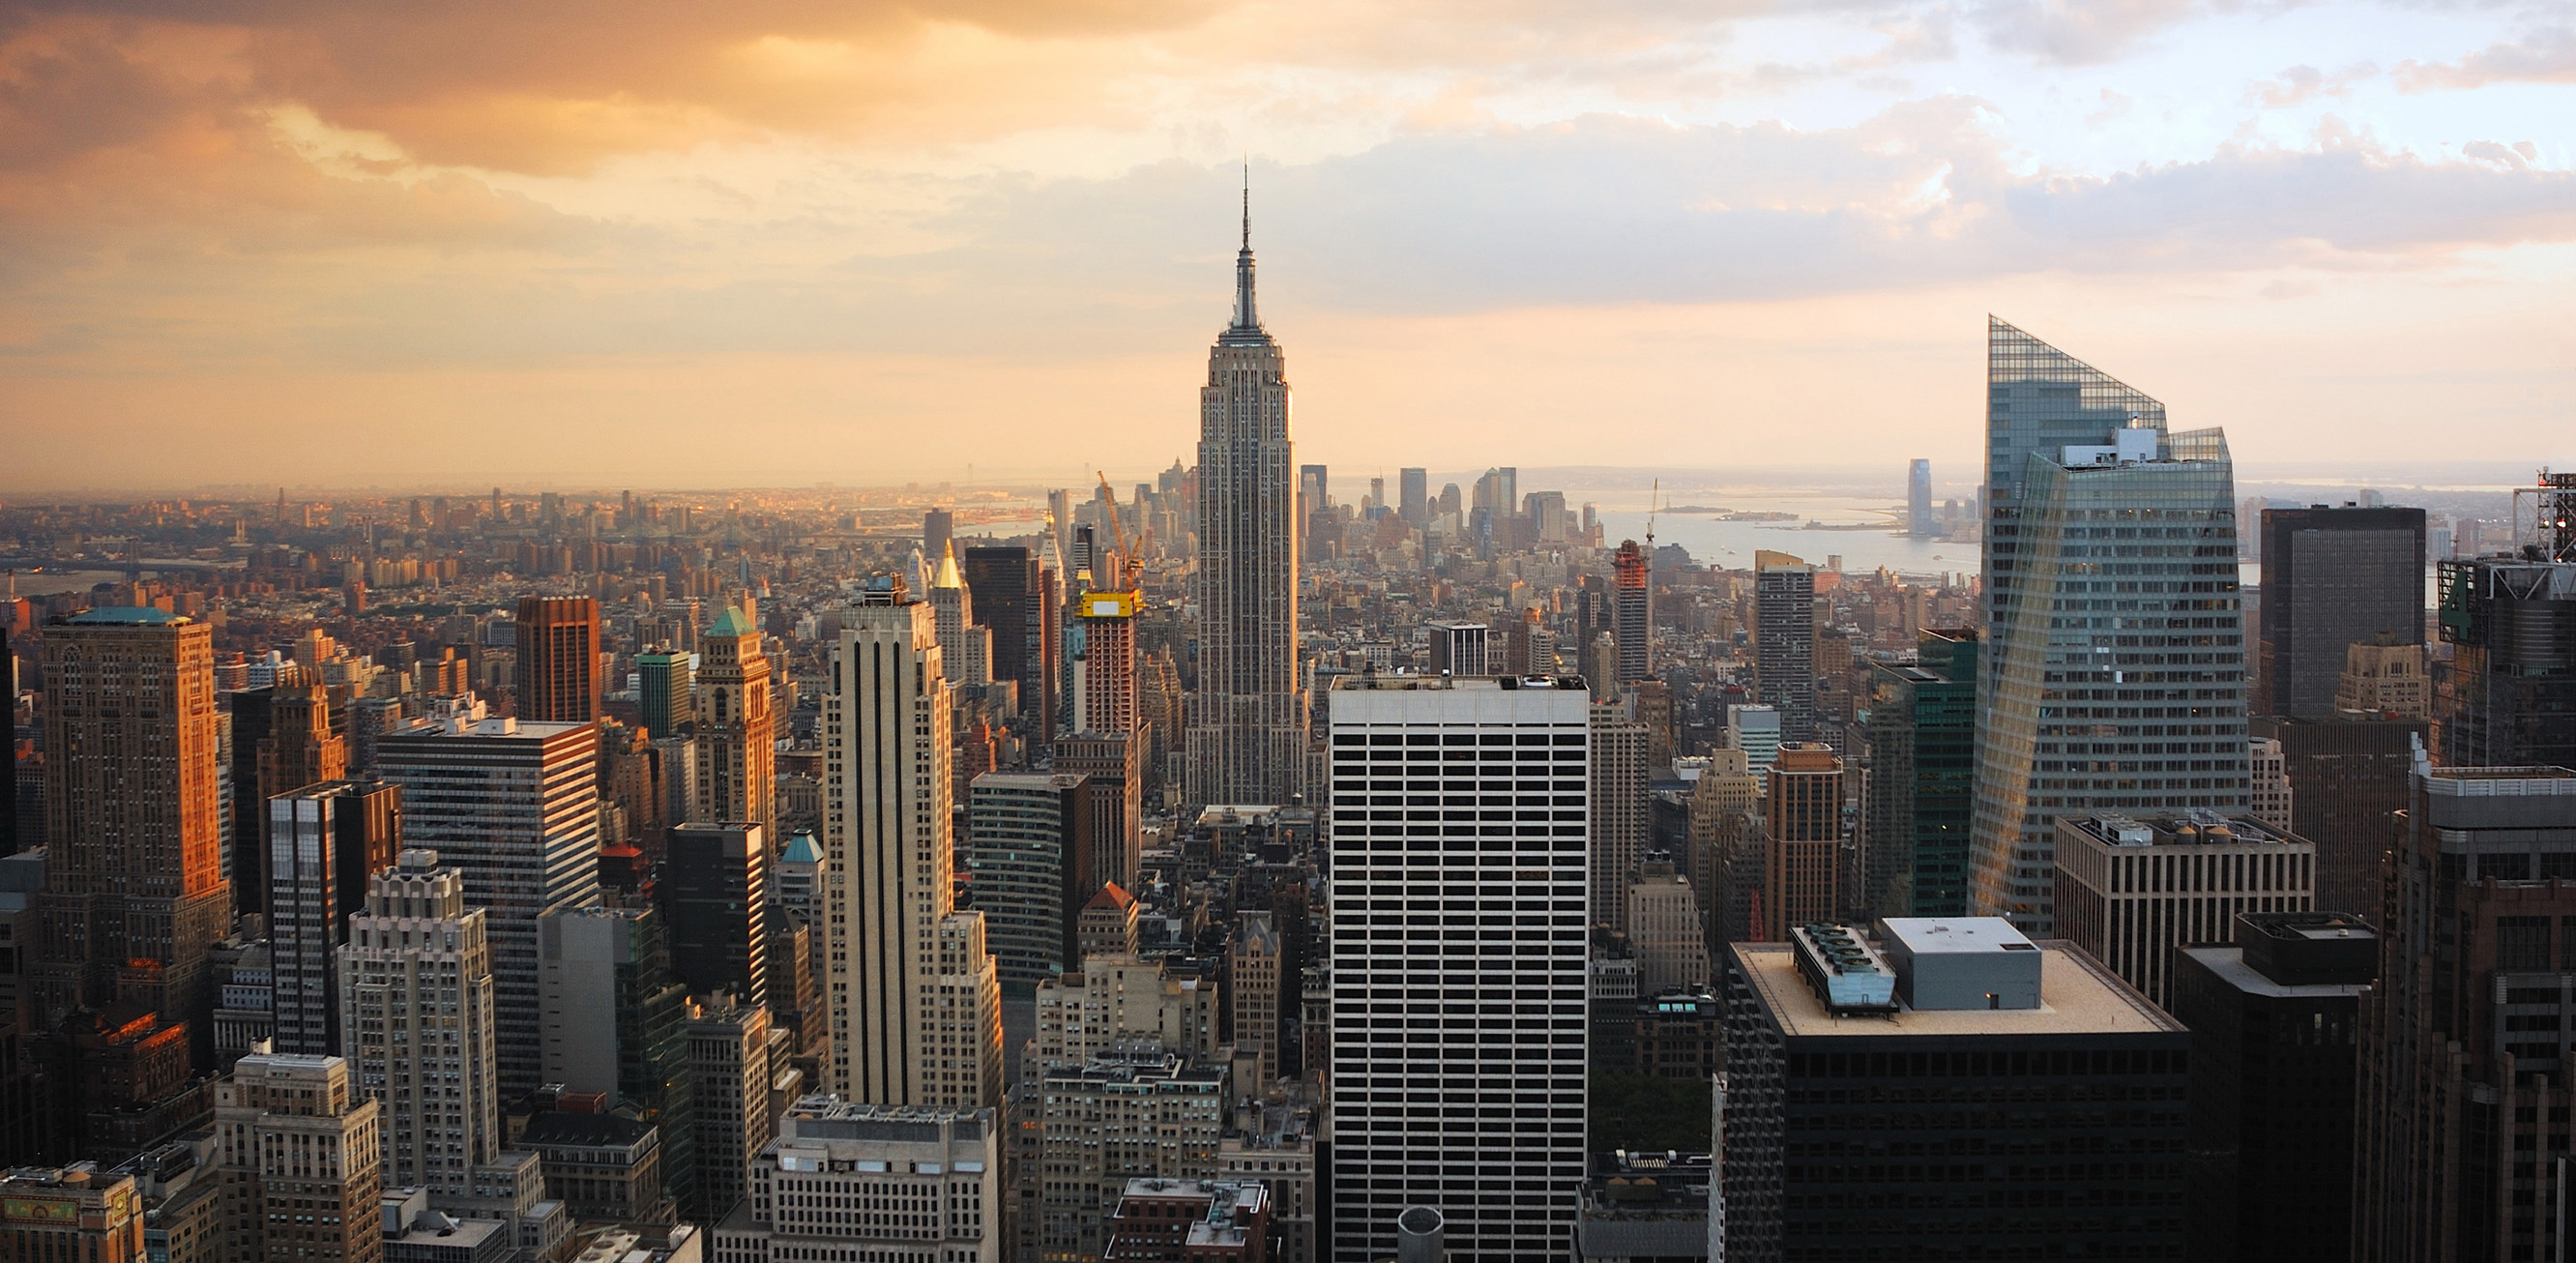 The Empire State building surrounded by other tall buildings